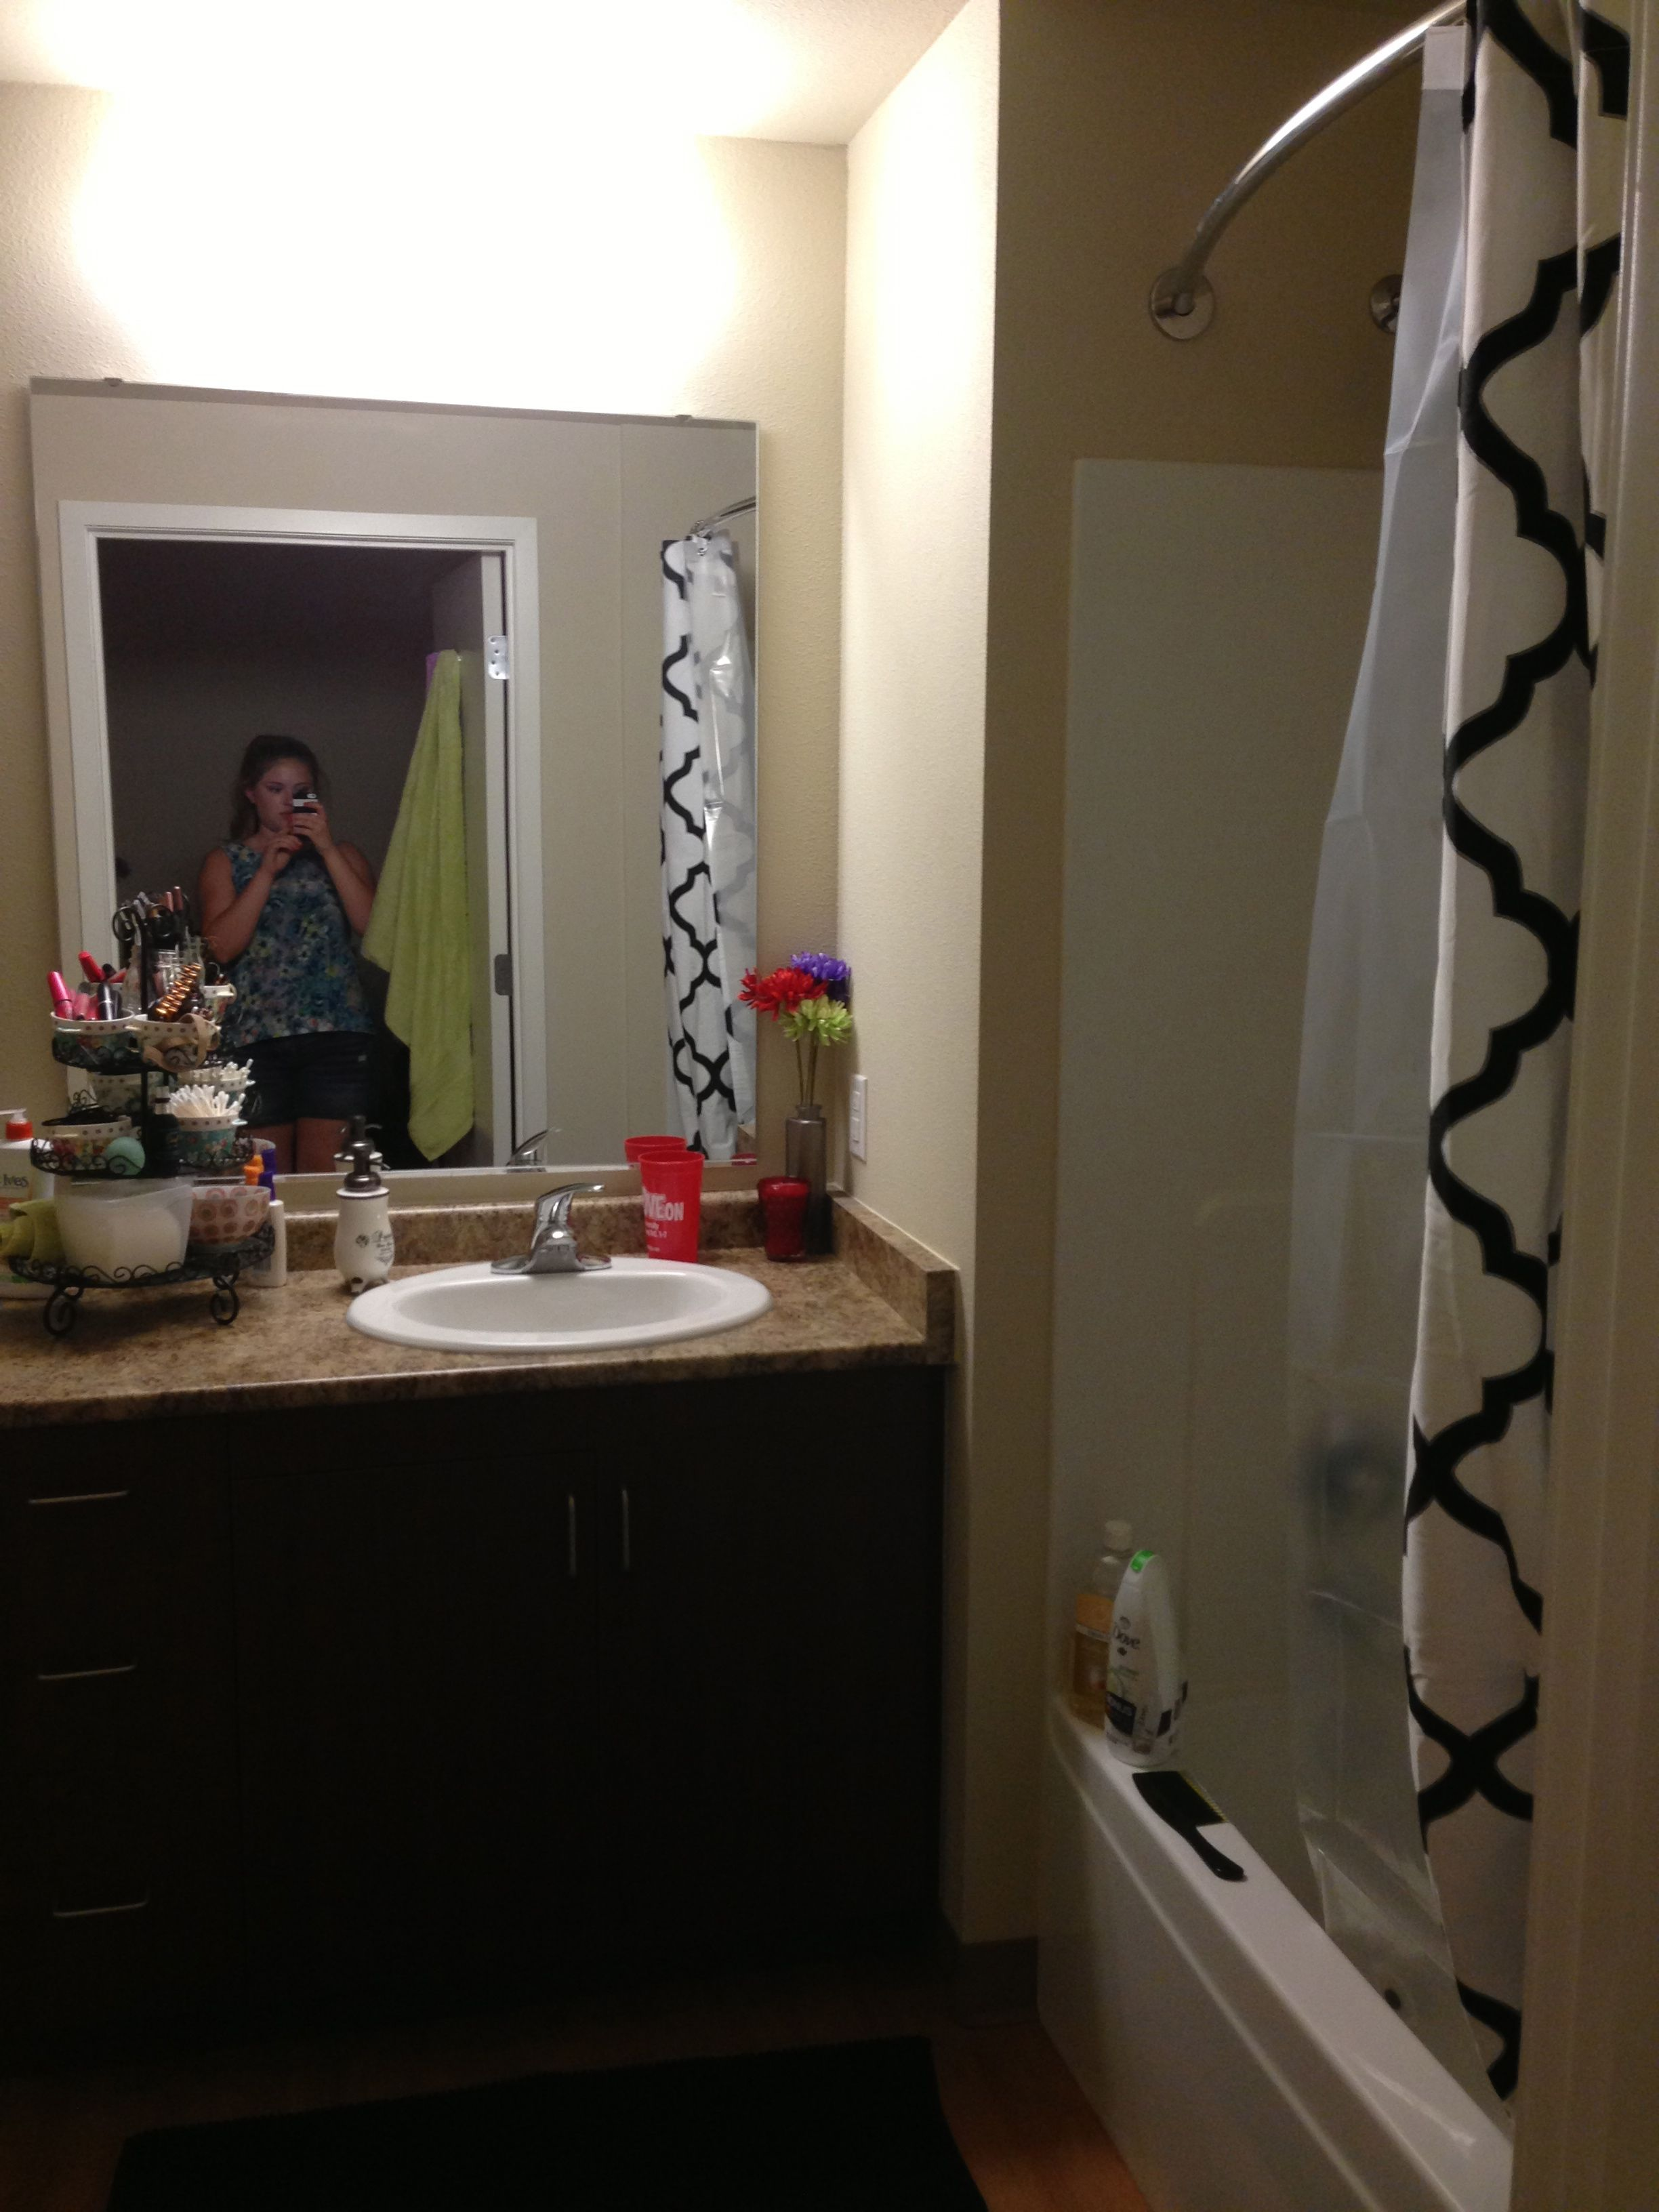 Your Own Bathroom In A 4x4 At Cardinal Court City Living Illinois State University Lighted Bathroom Mirror